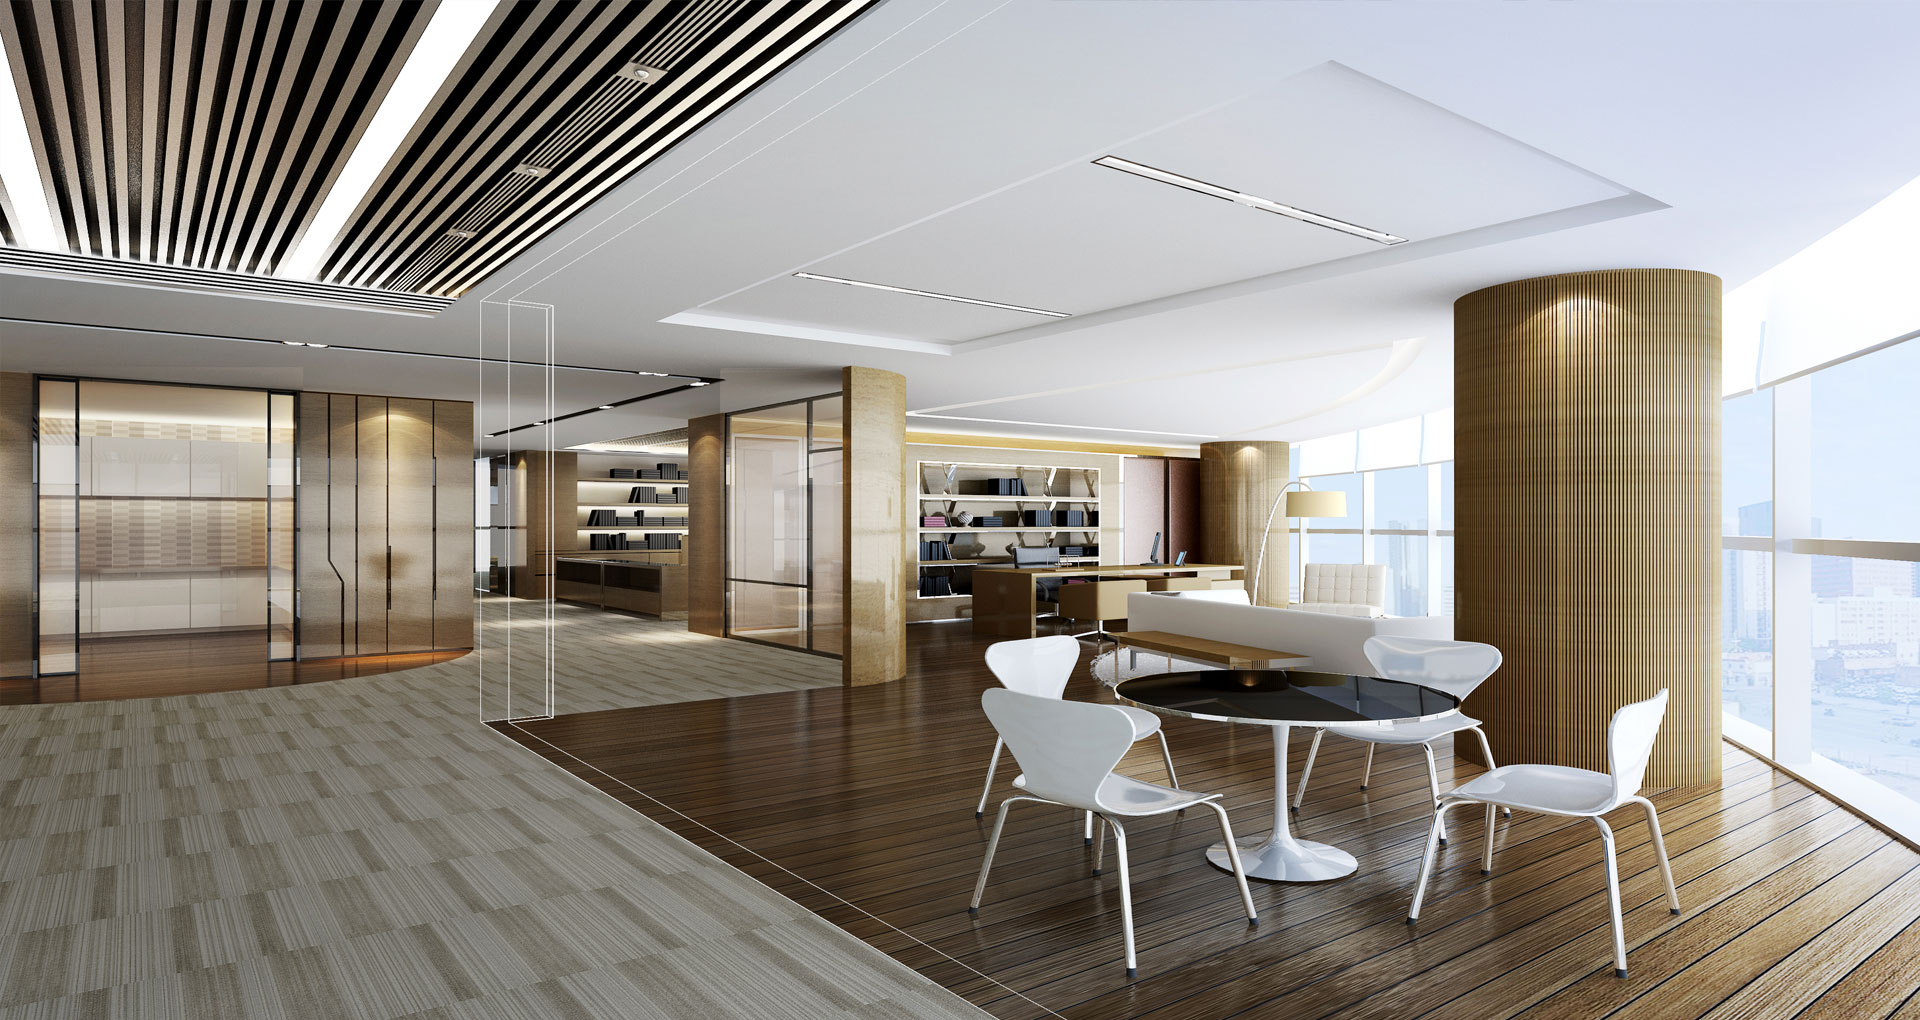 Office interior design inpro concepts design for Interior office design ideas photos layout